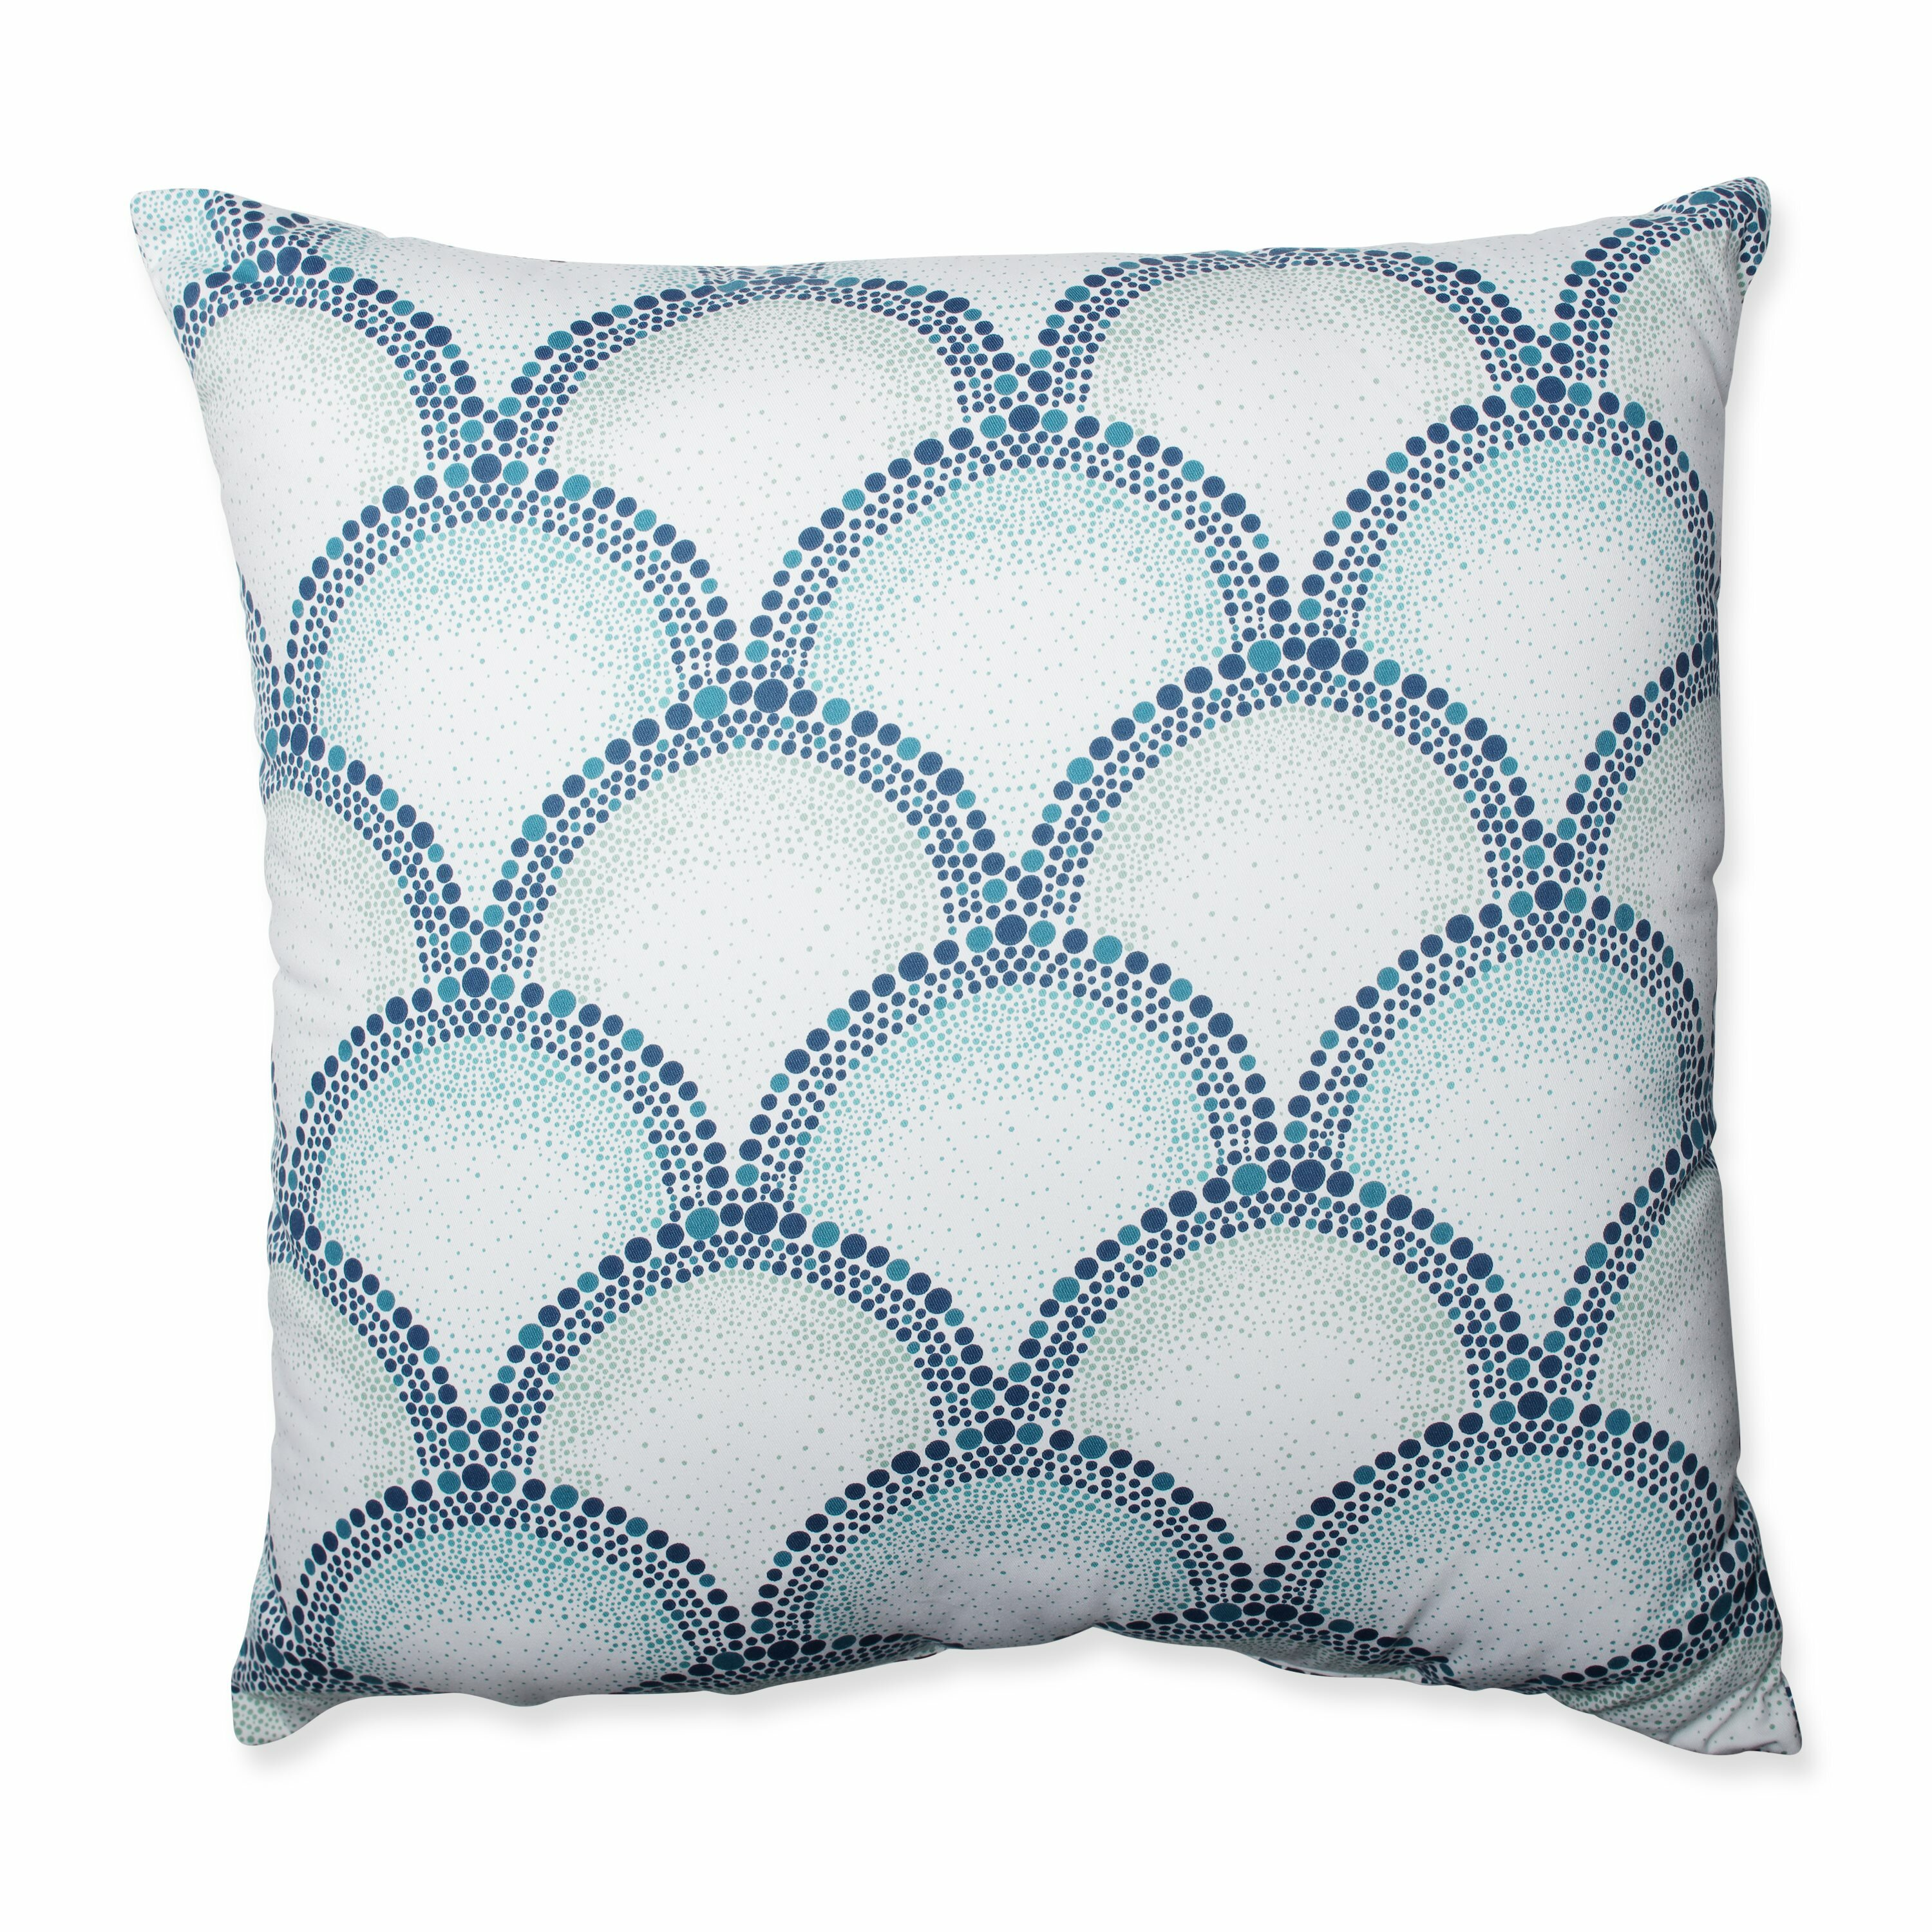 Wayfair Teal Throw Pillows : Shelamar Teal Cotton Throw Pillow Wayfair